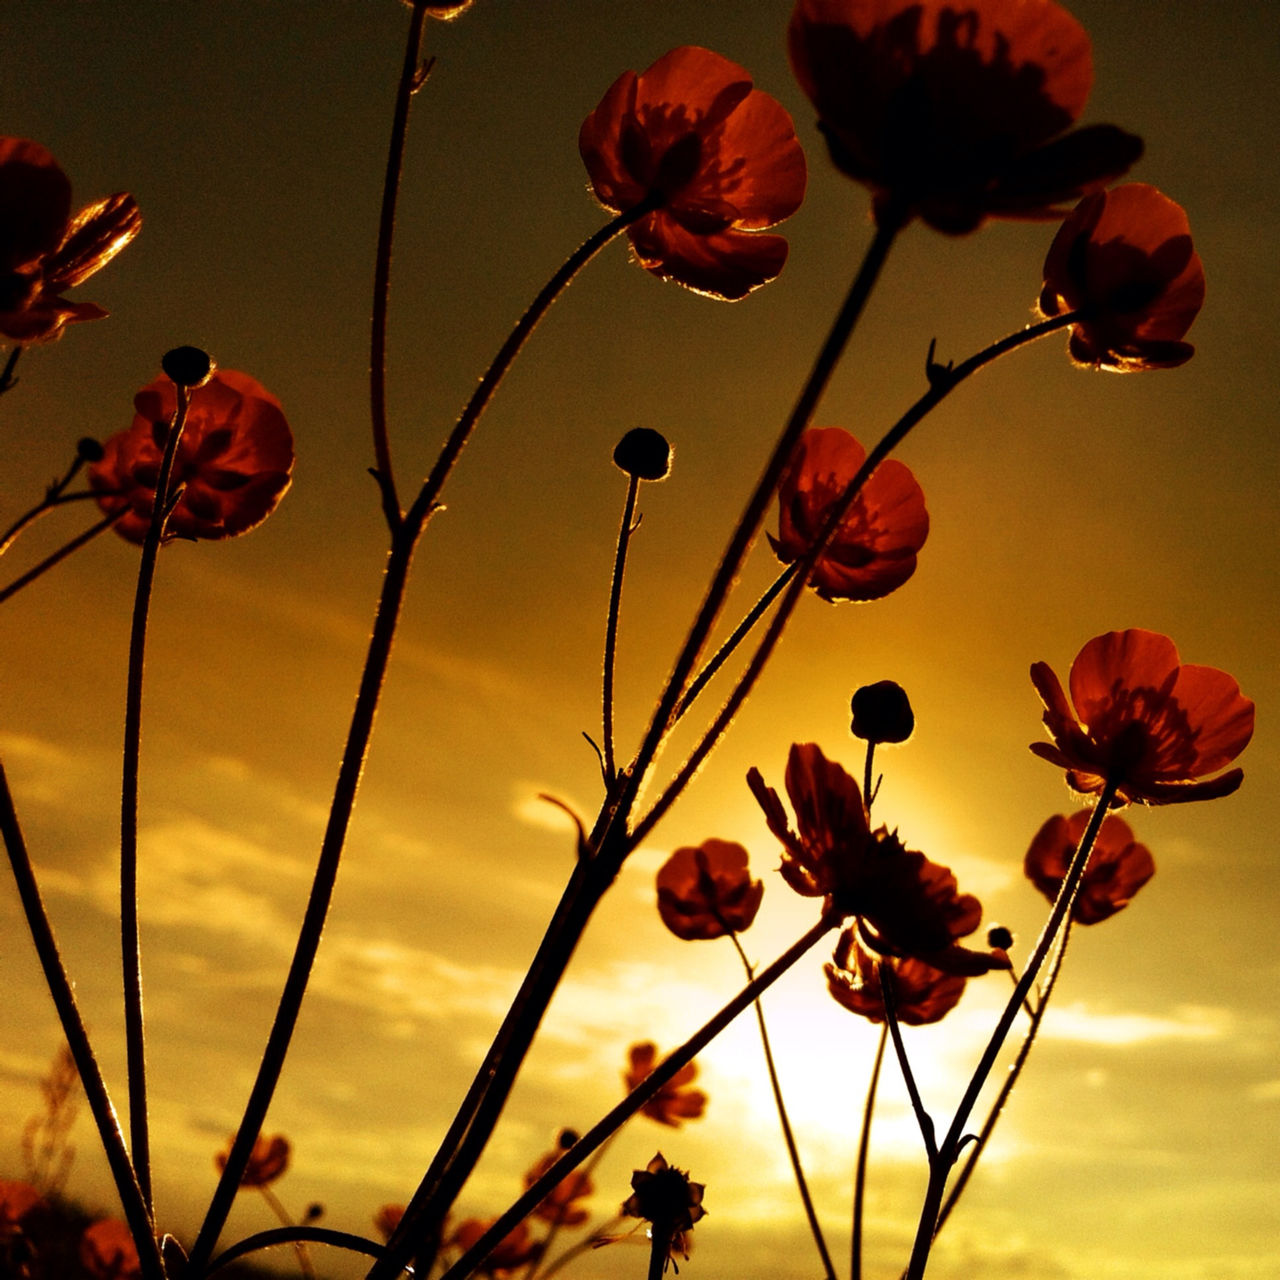 Close-up of flowers growing on field at sunset